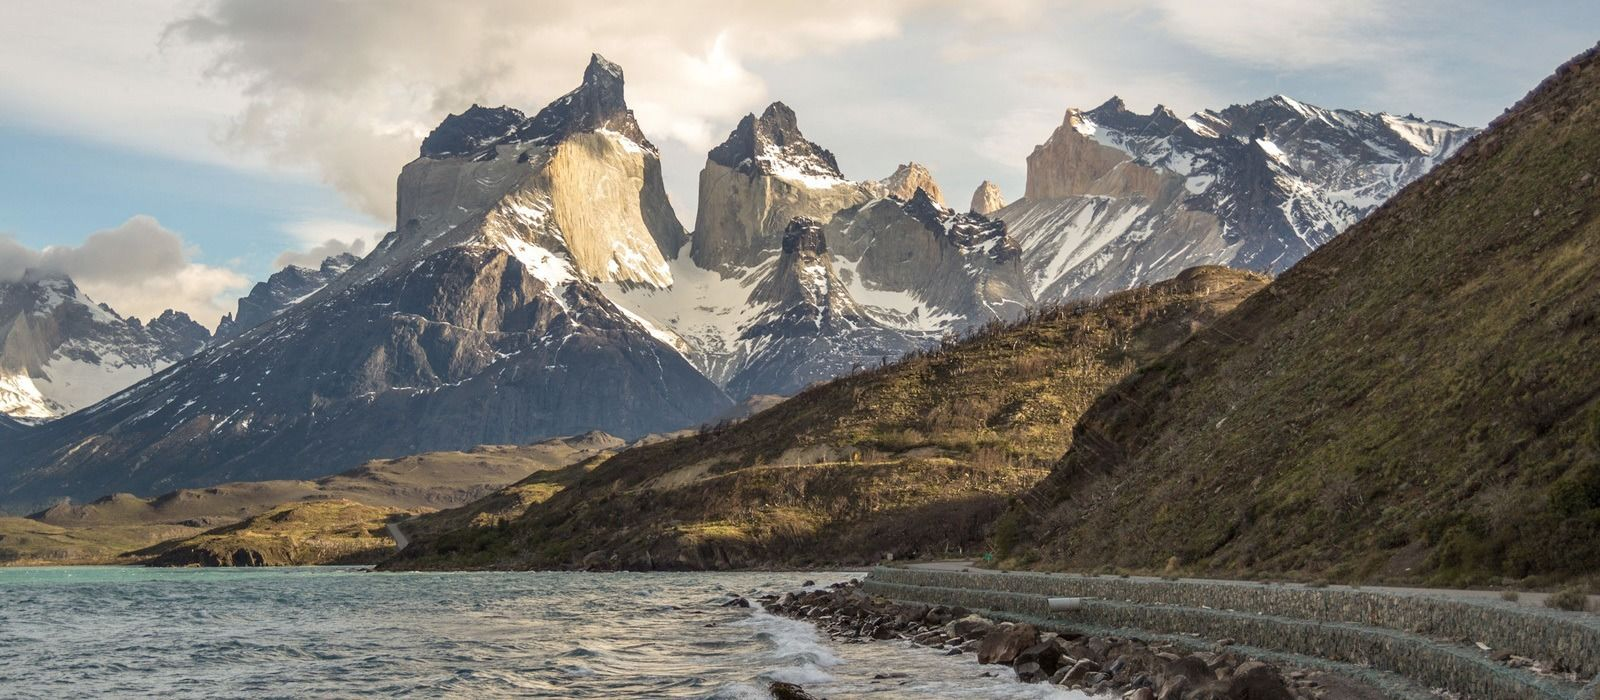 Argentina & Chile: Hiking in Patagonia Tour Trip 2